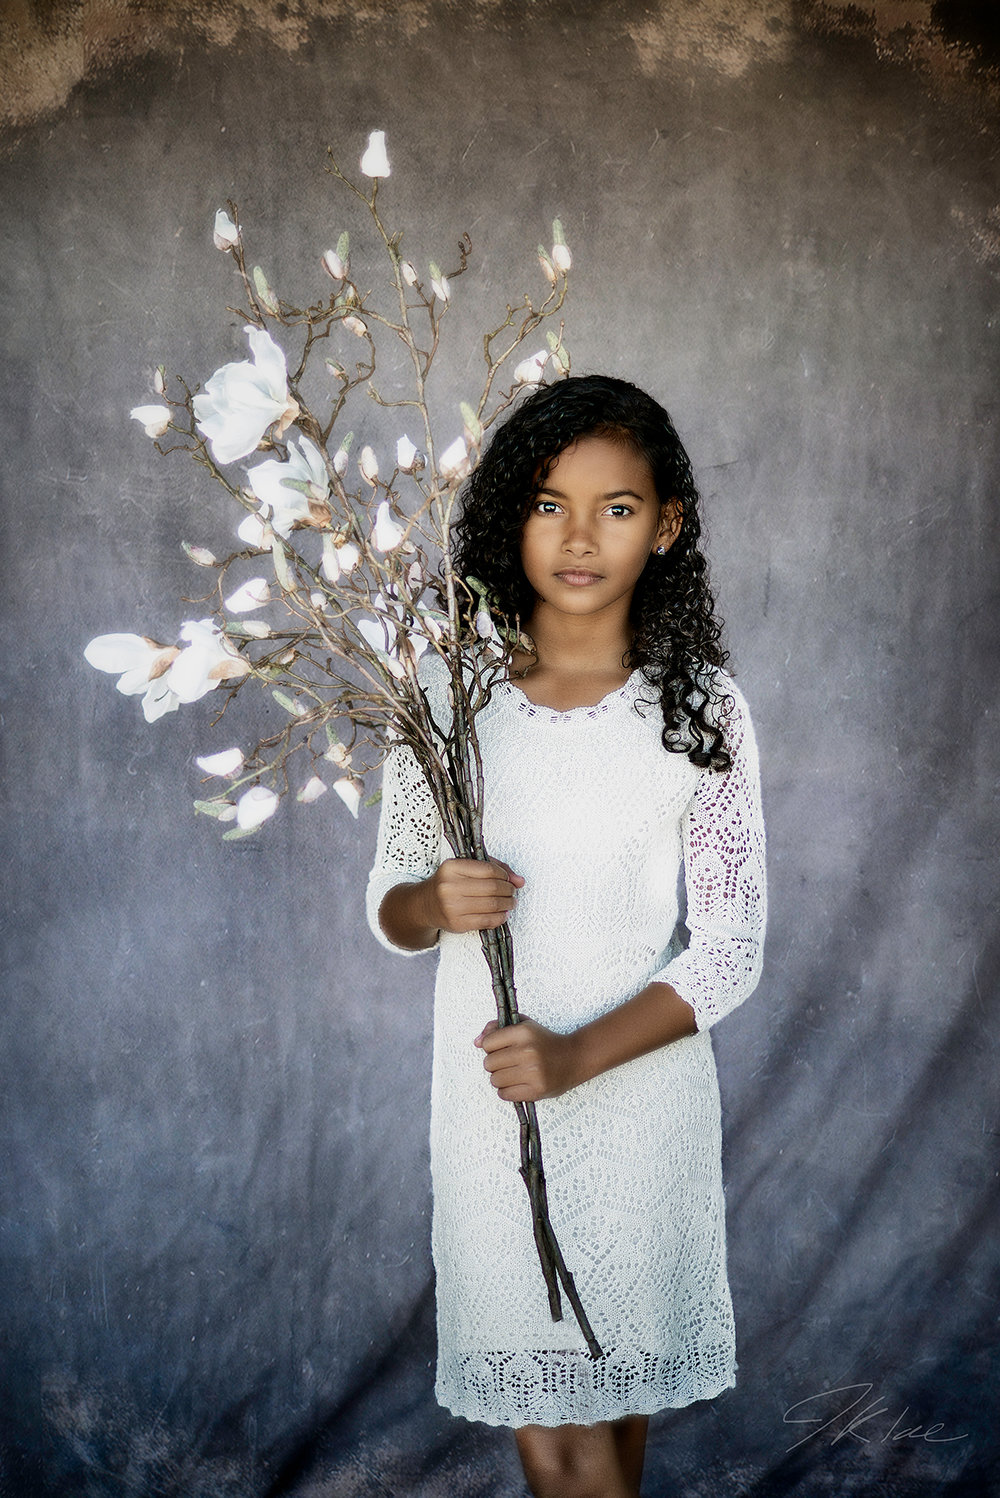 Fine Art Children's Portraiture of girl in whit dress holding white flowers in McKinney Texas